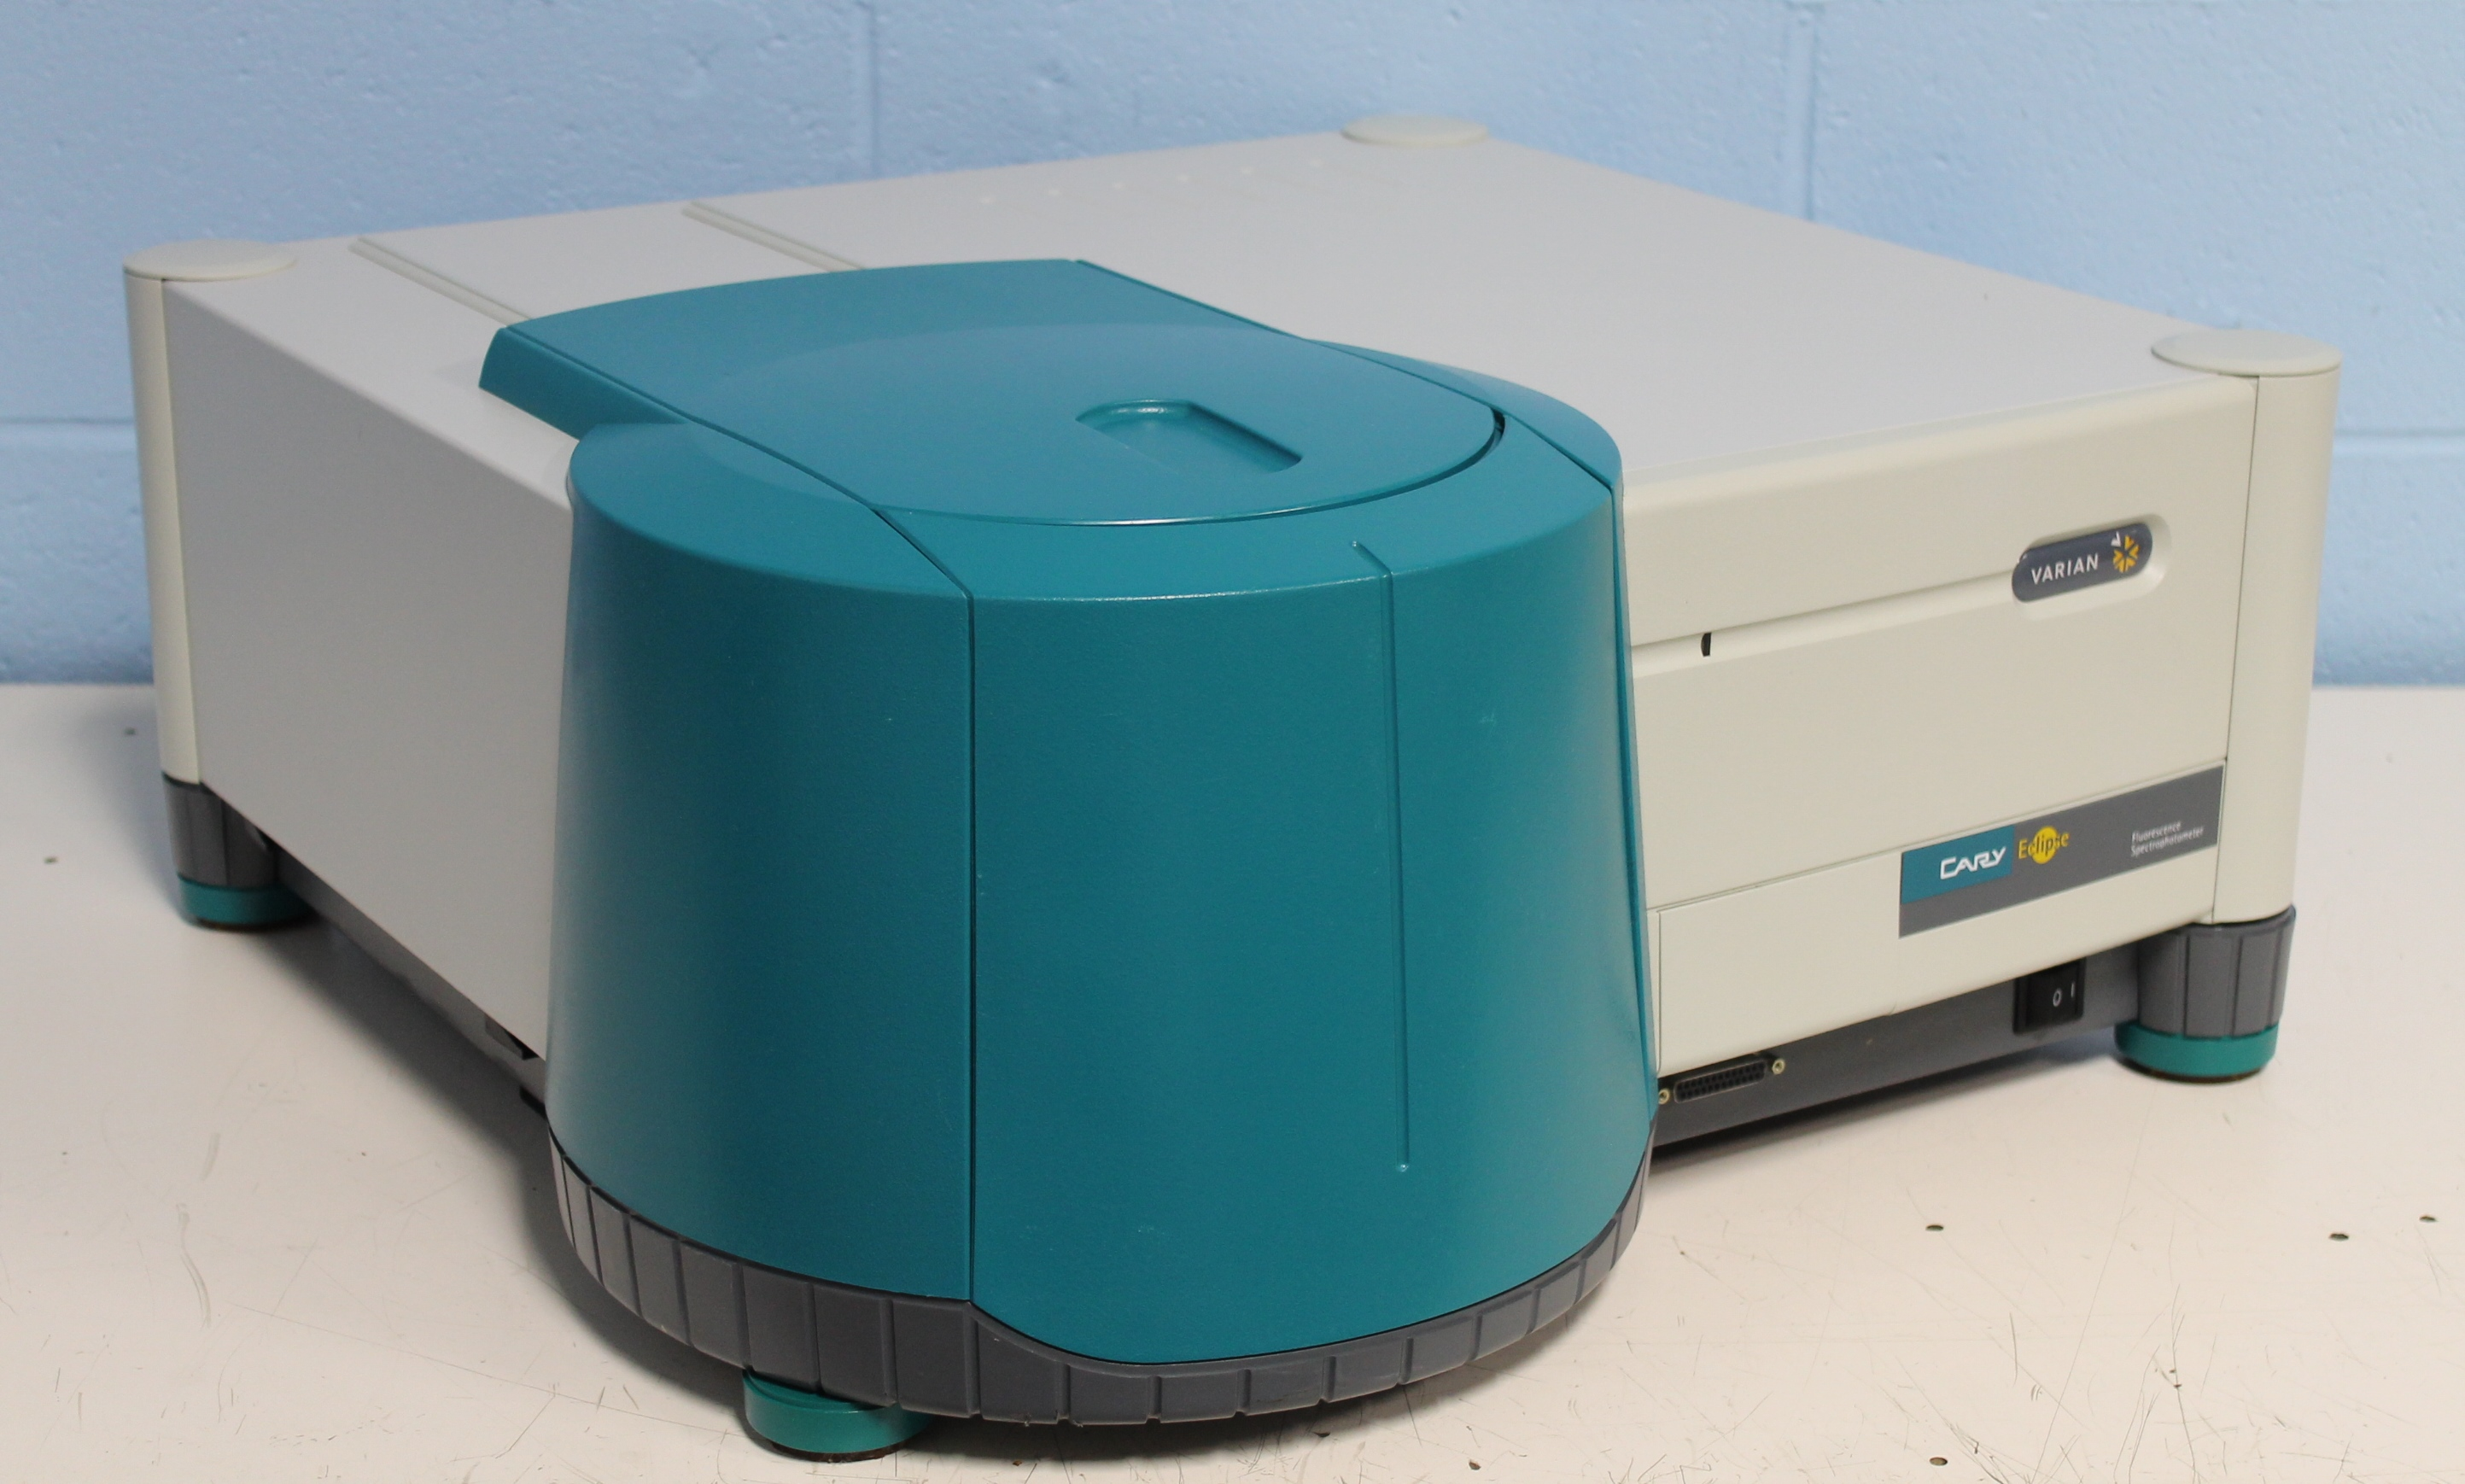 Refurbished Varian Cary Eclipse Fluorescence Spectrophotometer